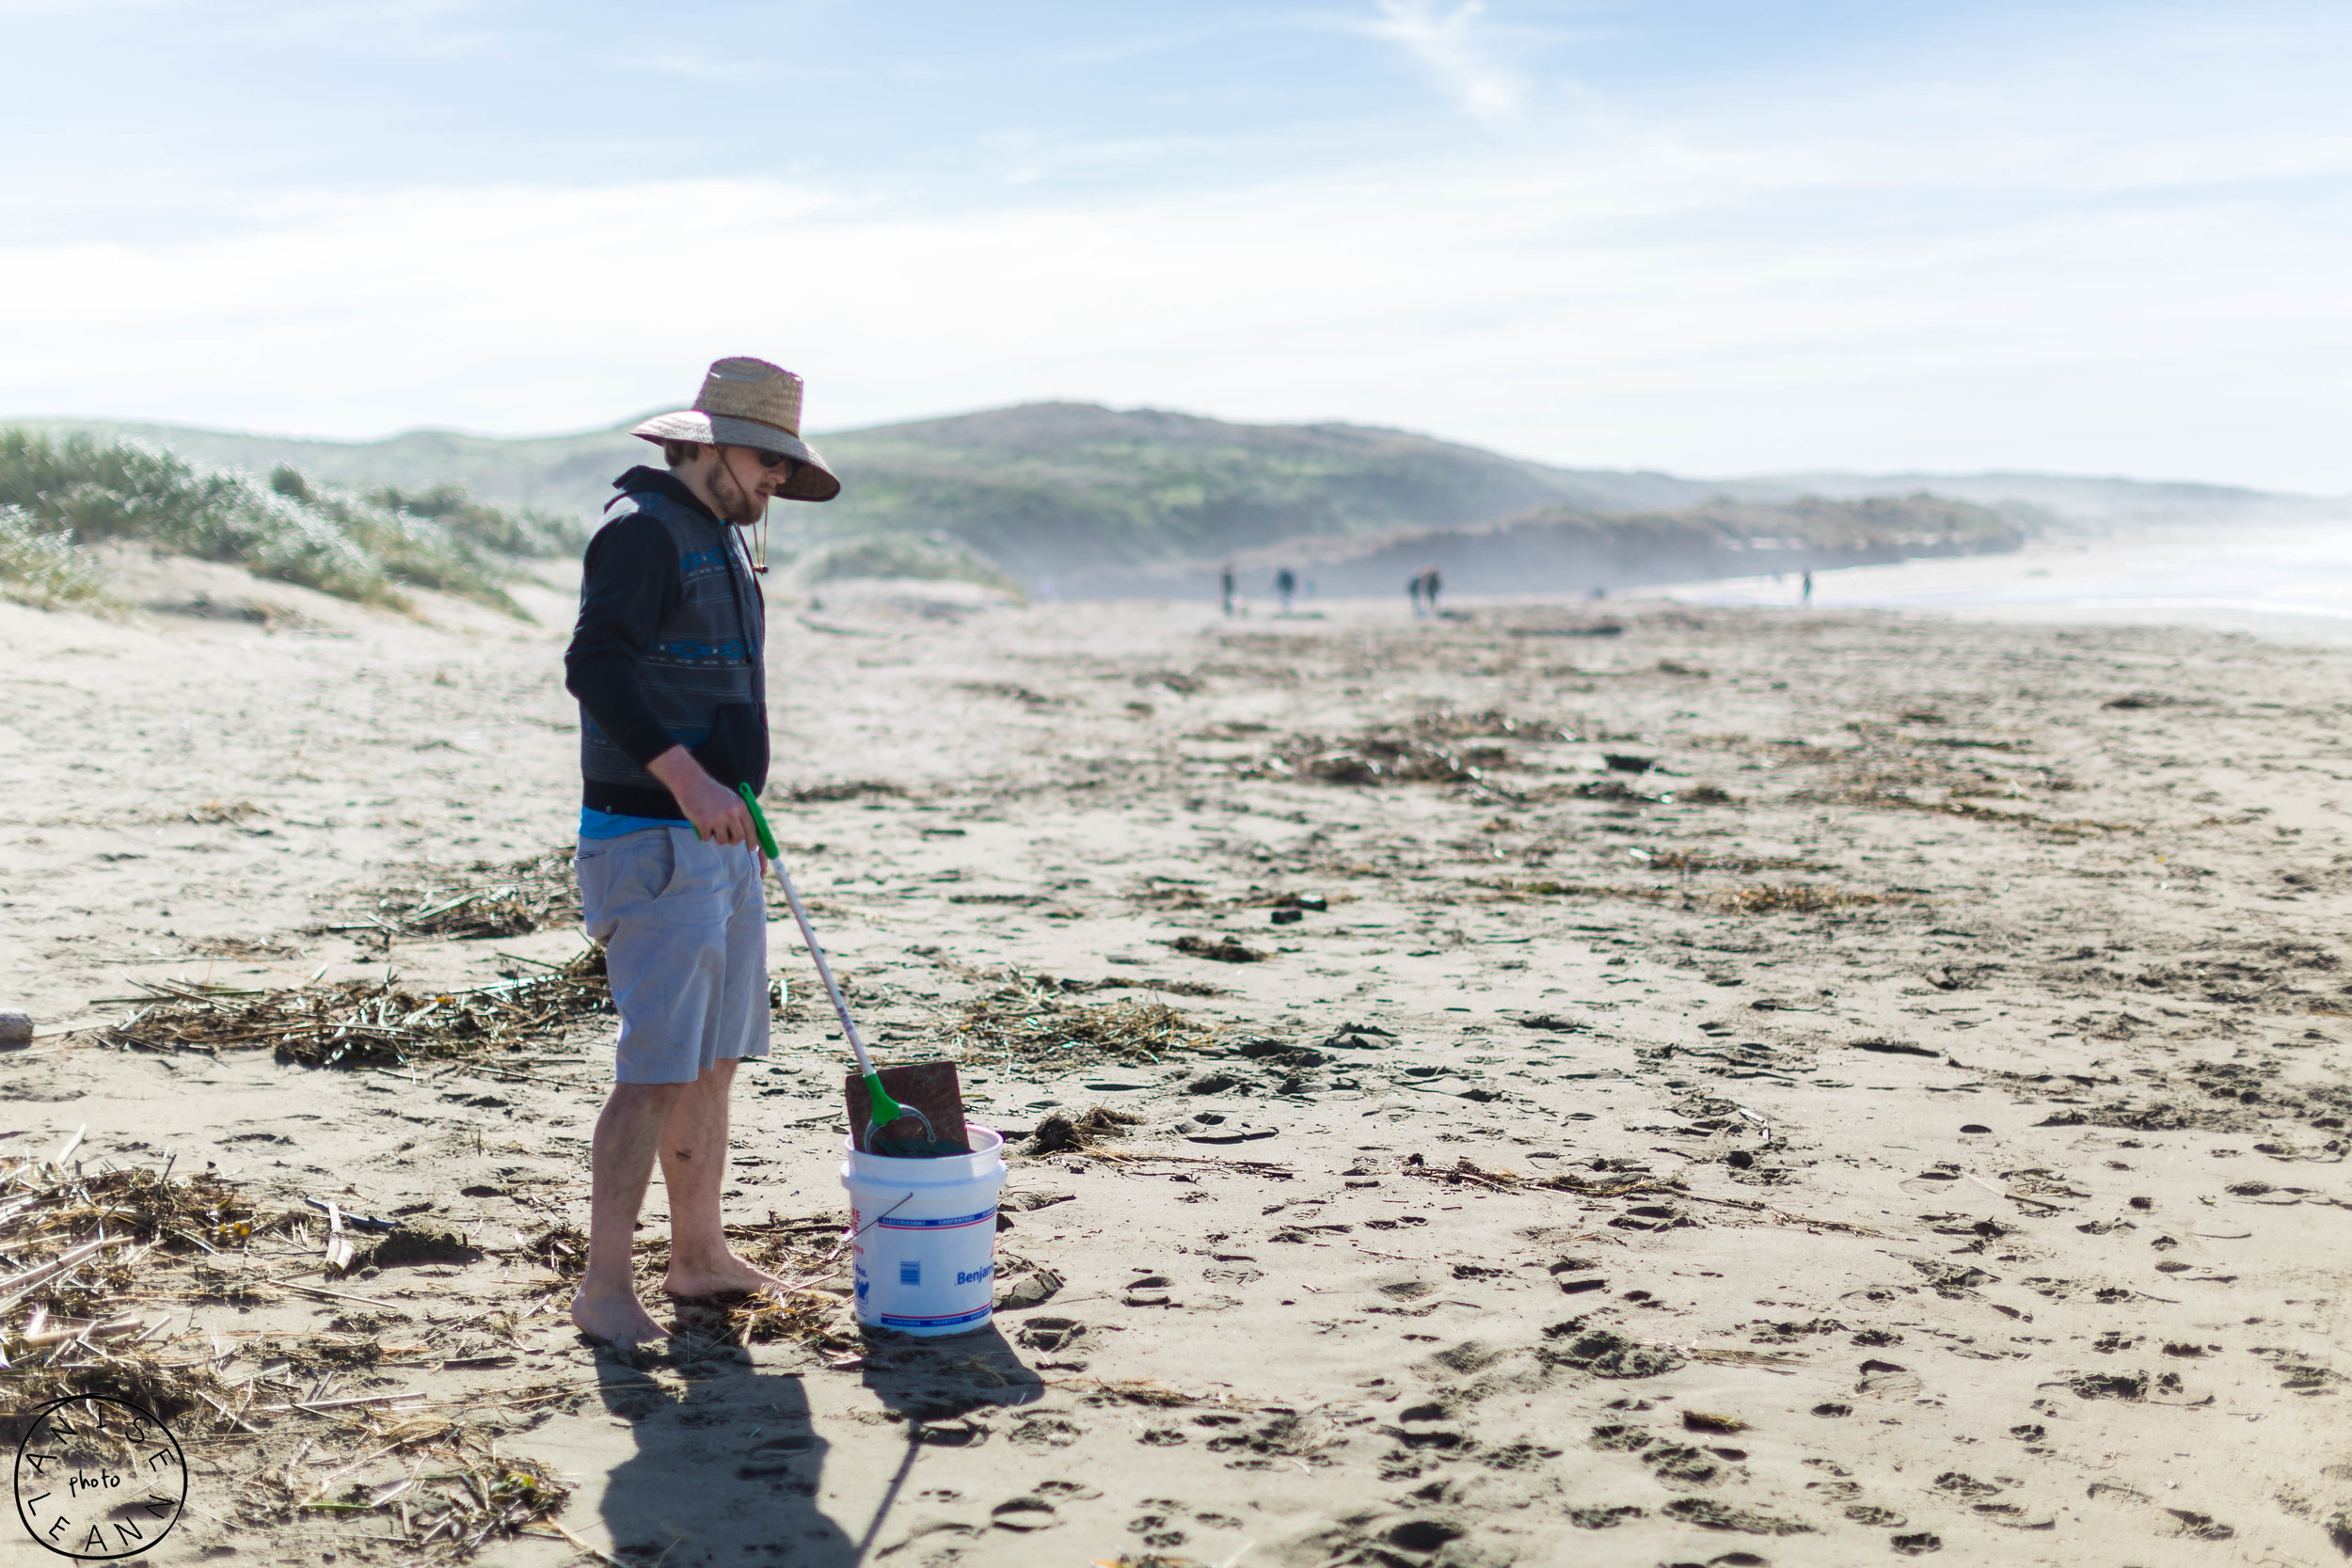 Nick is the beach cleanup manager - he will be hosting monthly cleanups